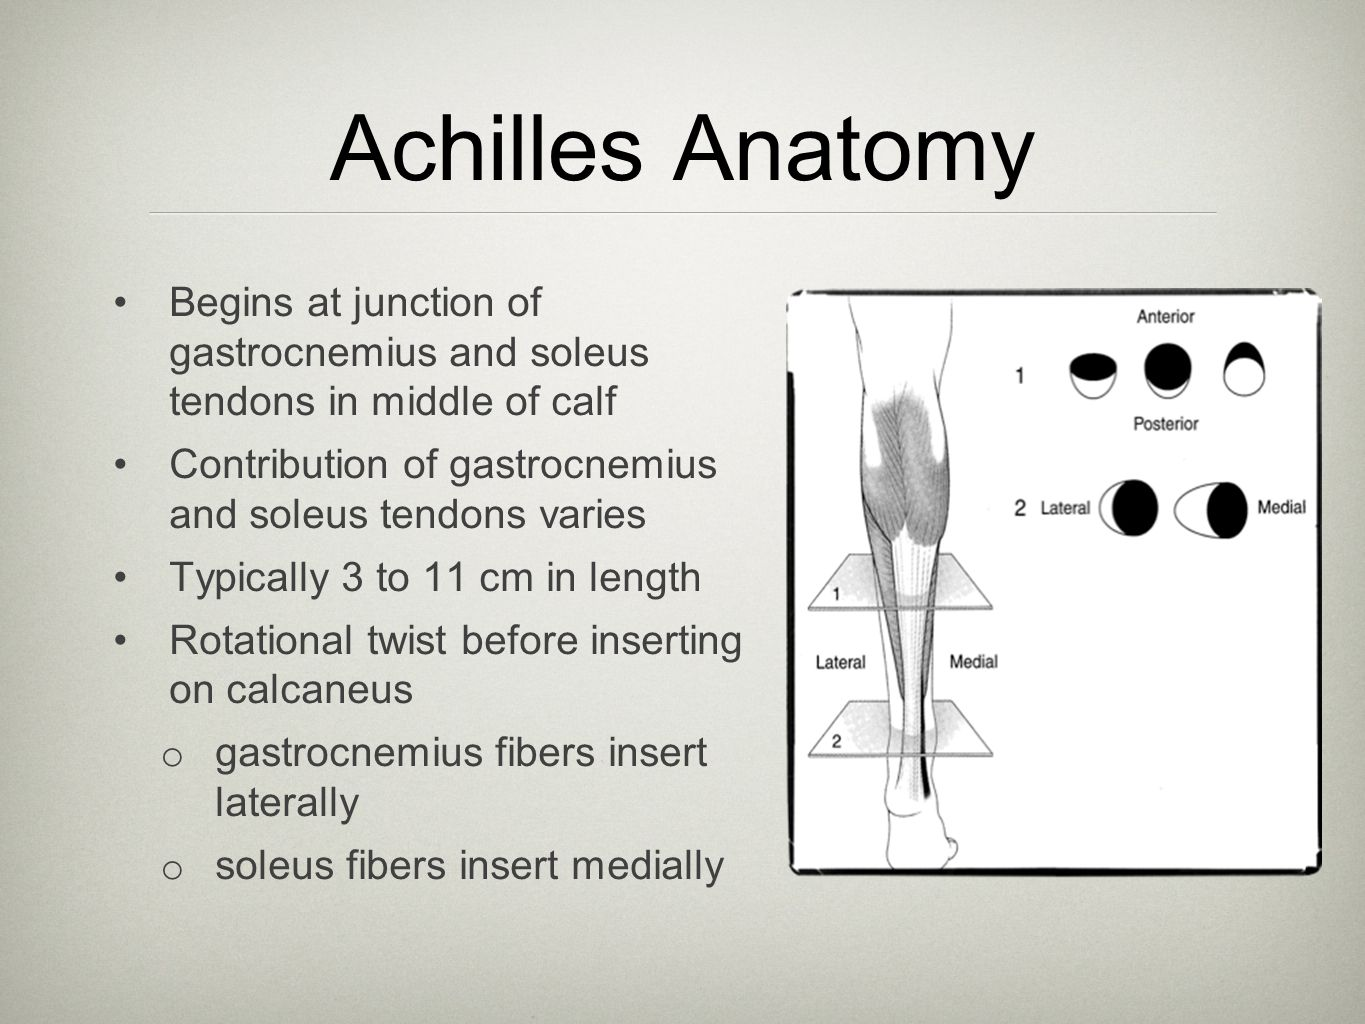 Achilles Anatomy Begins at junction of gastrocnemius and soleus tendons in middle of calf.